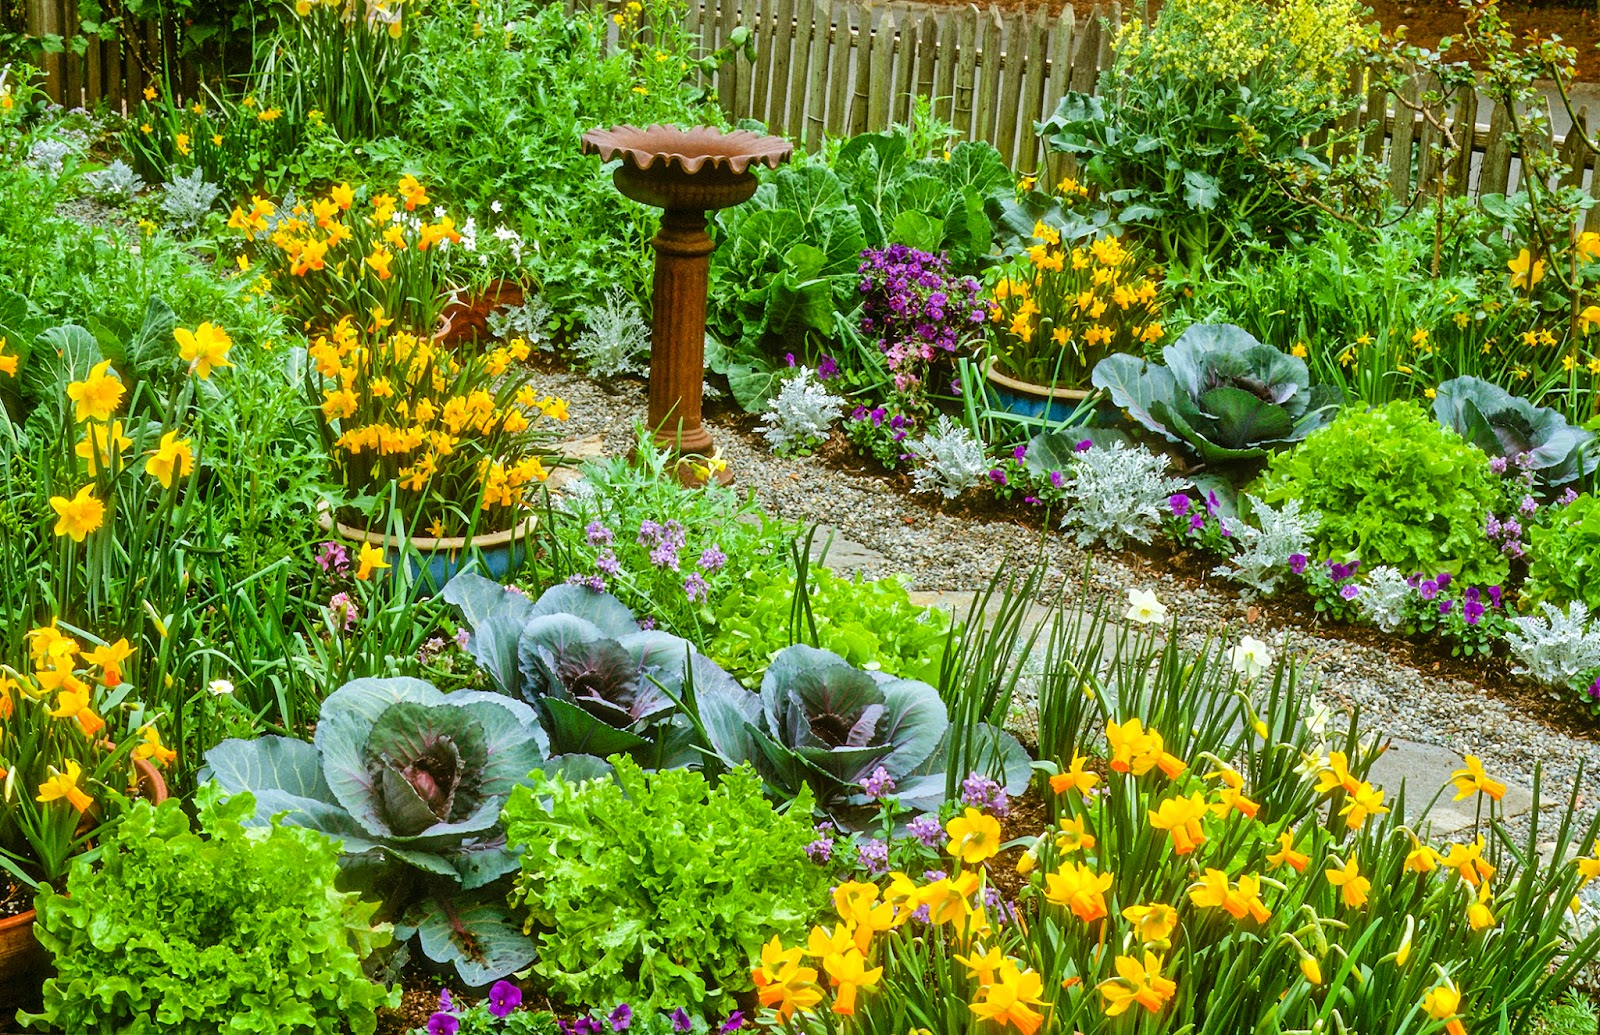 Ask a master gardener explore edible landscaping its fun and productive Flowers to plant in vegetable garden